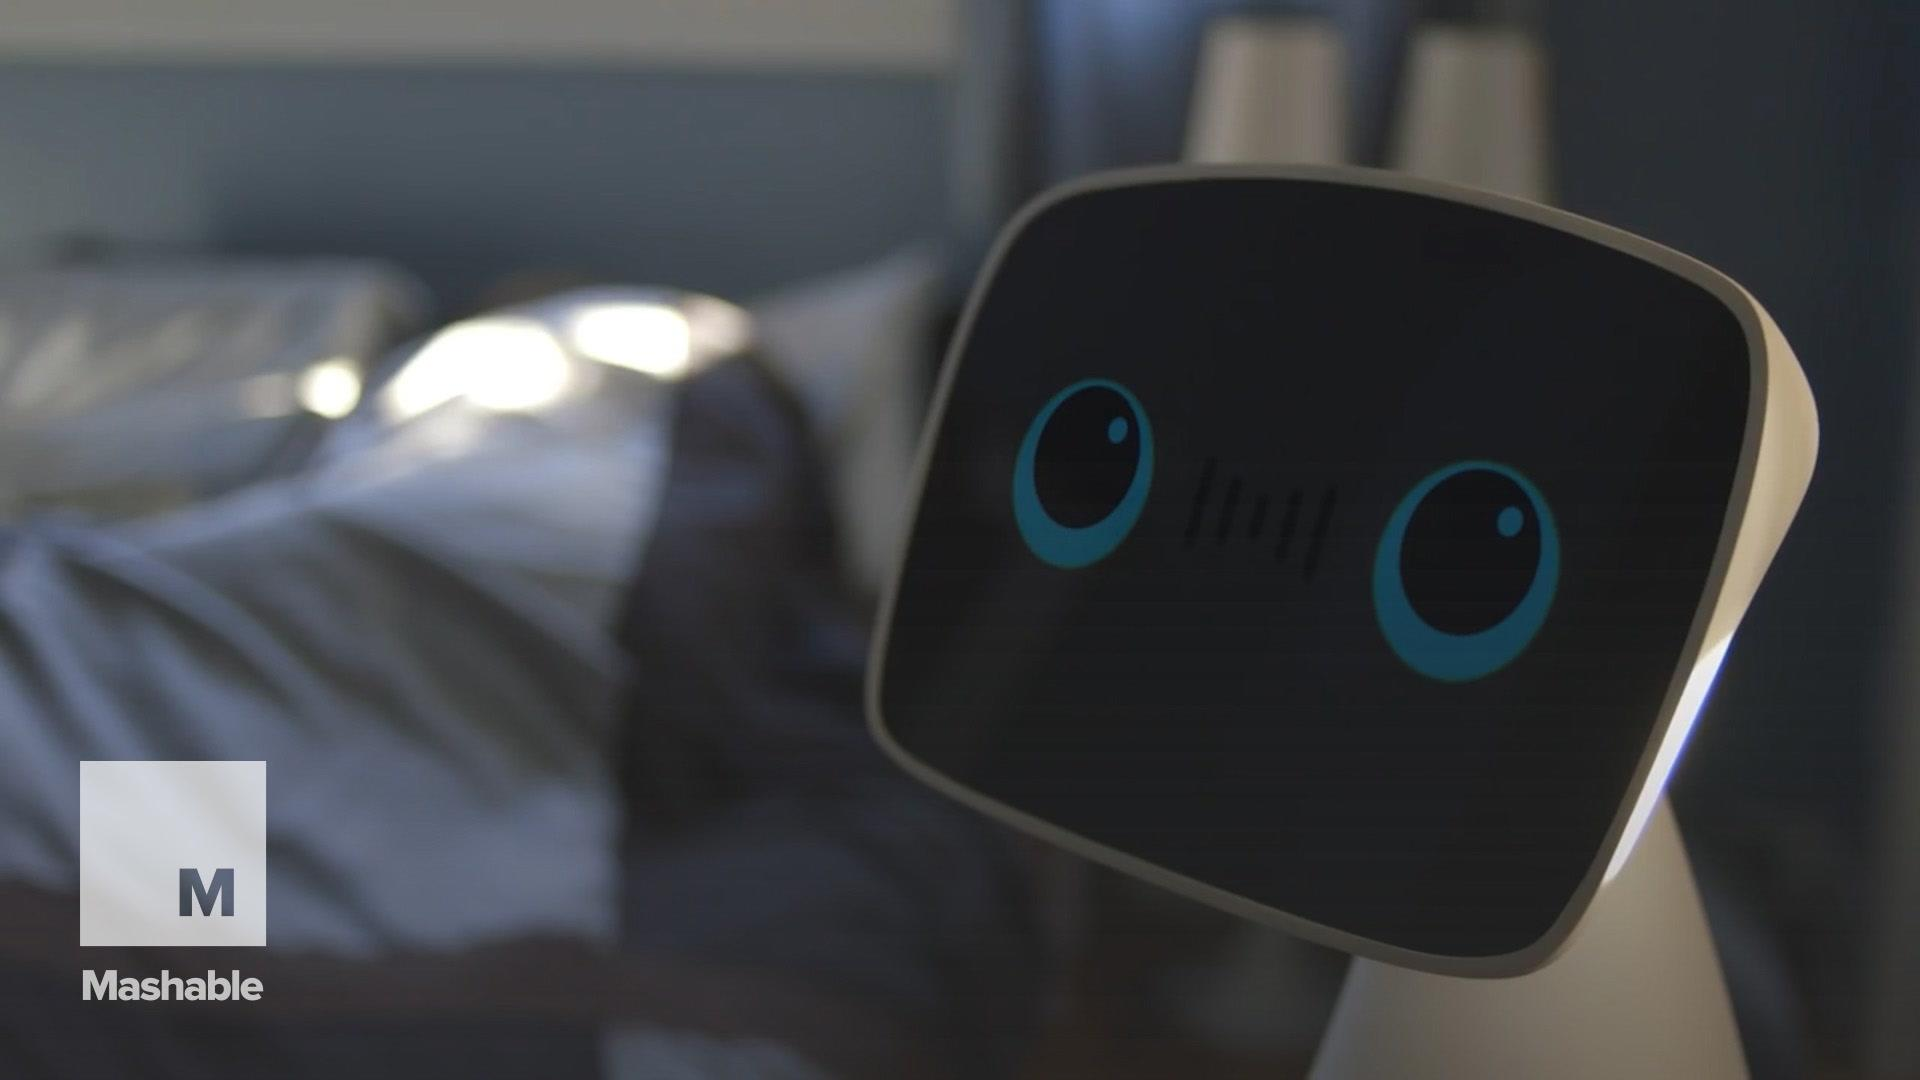 This Friendly Robot Wants to Become a Part of your Family